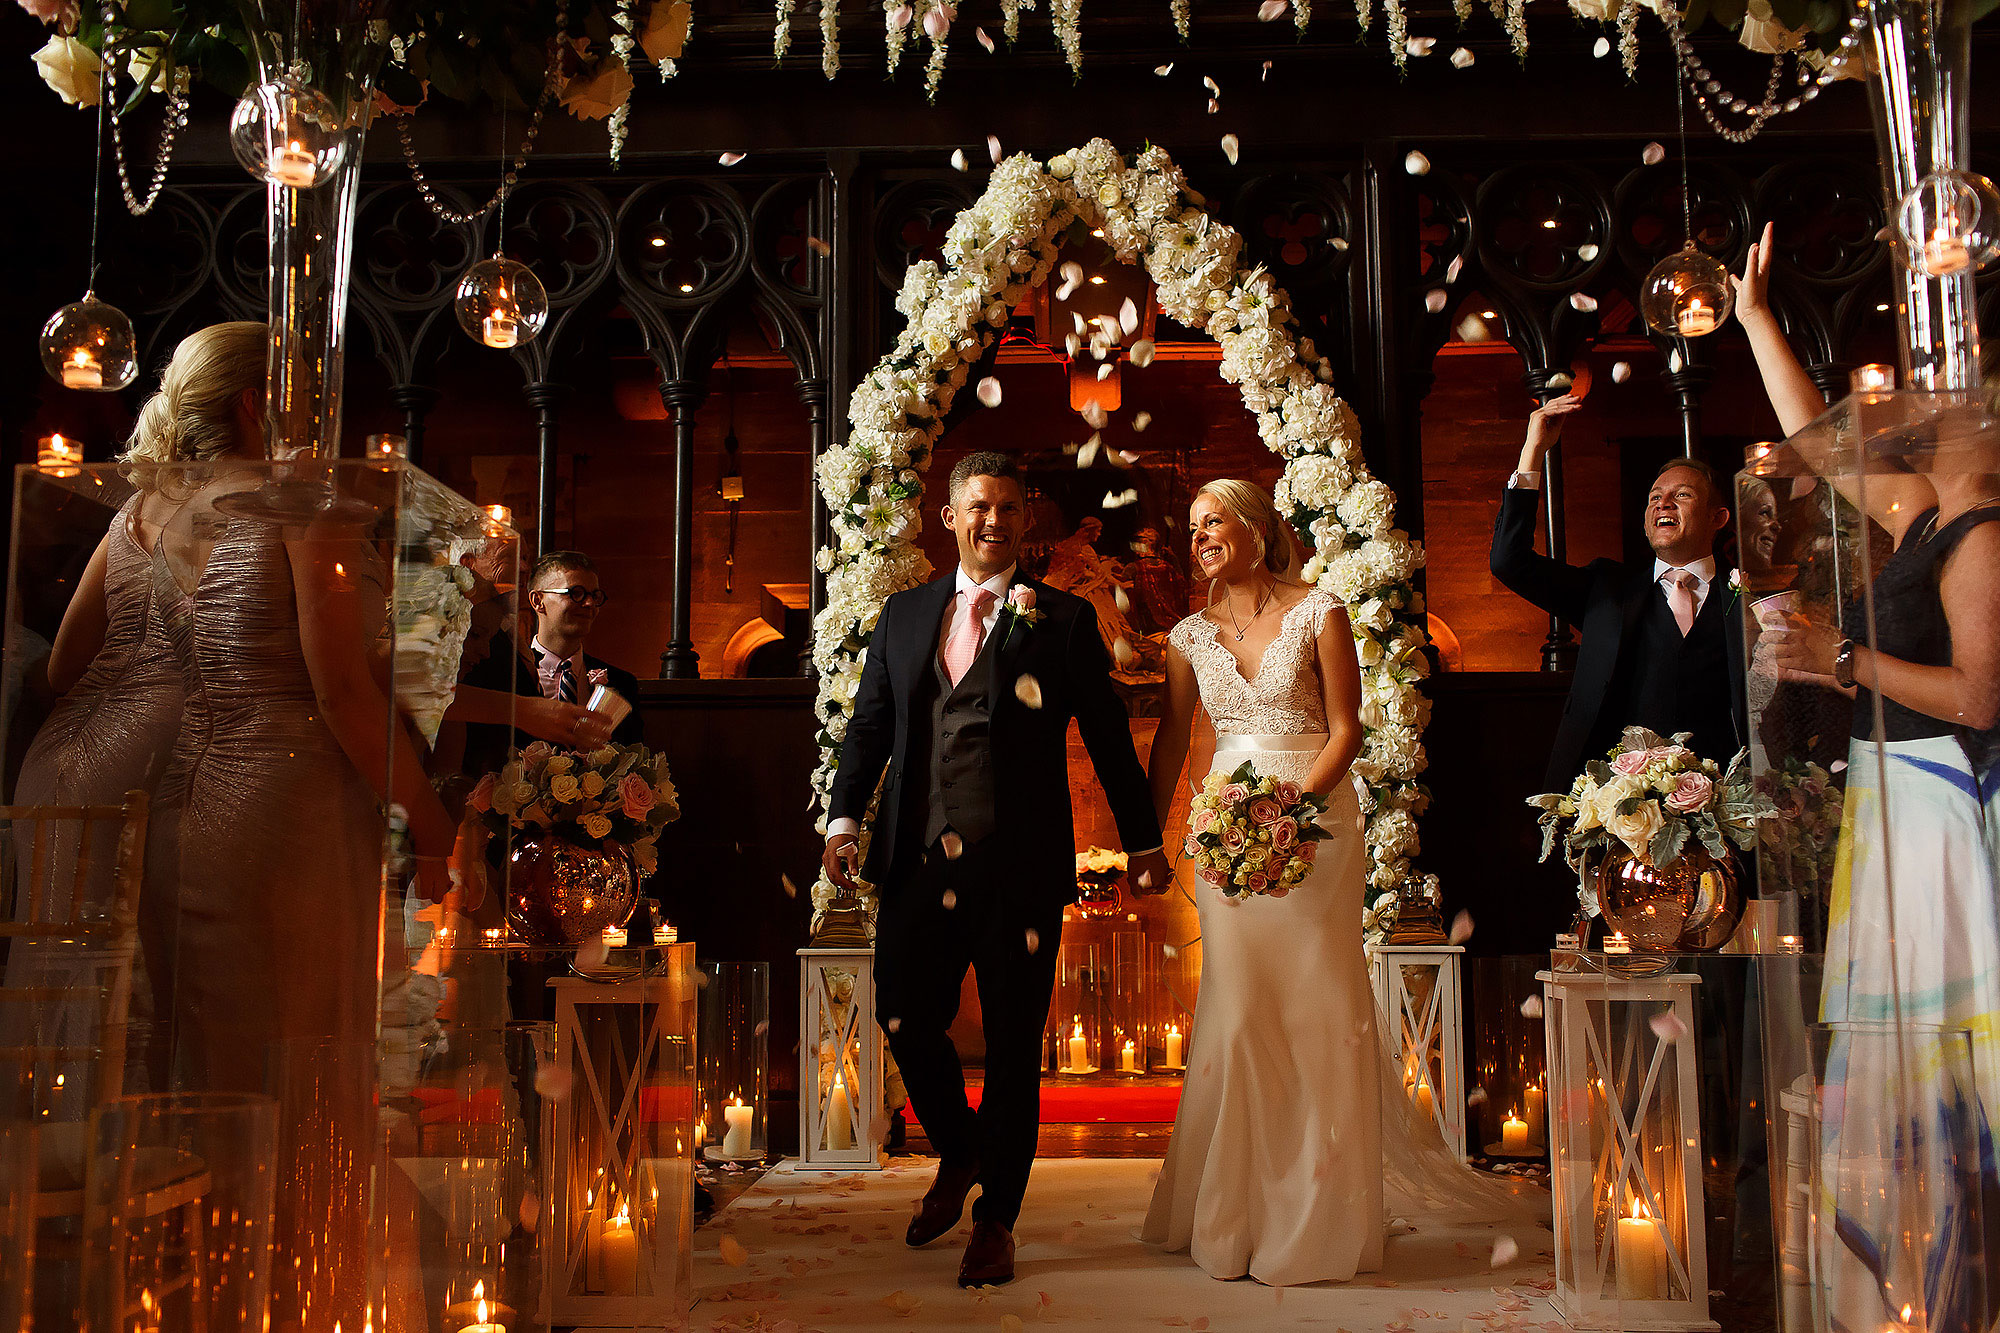 Bride and groom holding hands in the air in front of large floral arch at the top of the wedding aisle decorated with candles and flowers as guests throw wedding confetti | Peckforton Castle Wedding by Toni Darcy Photography